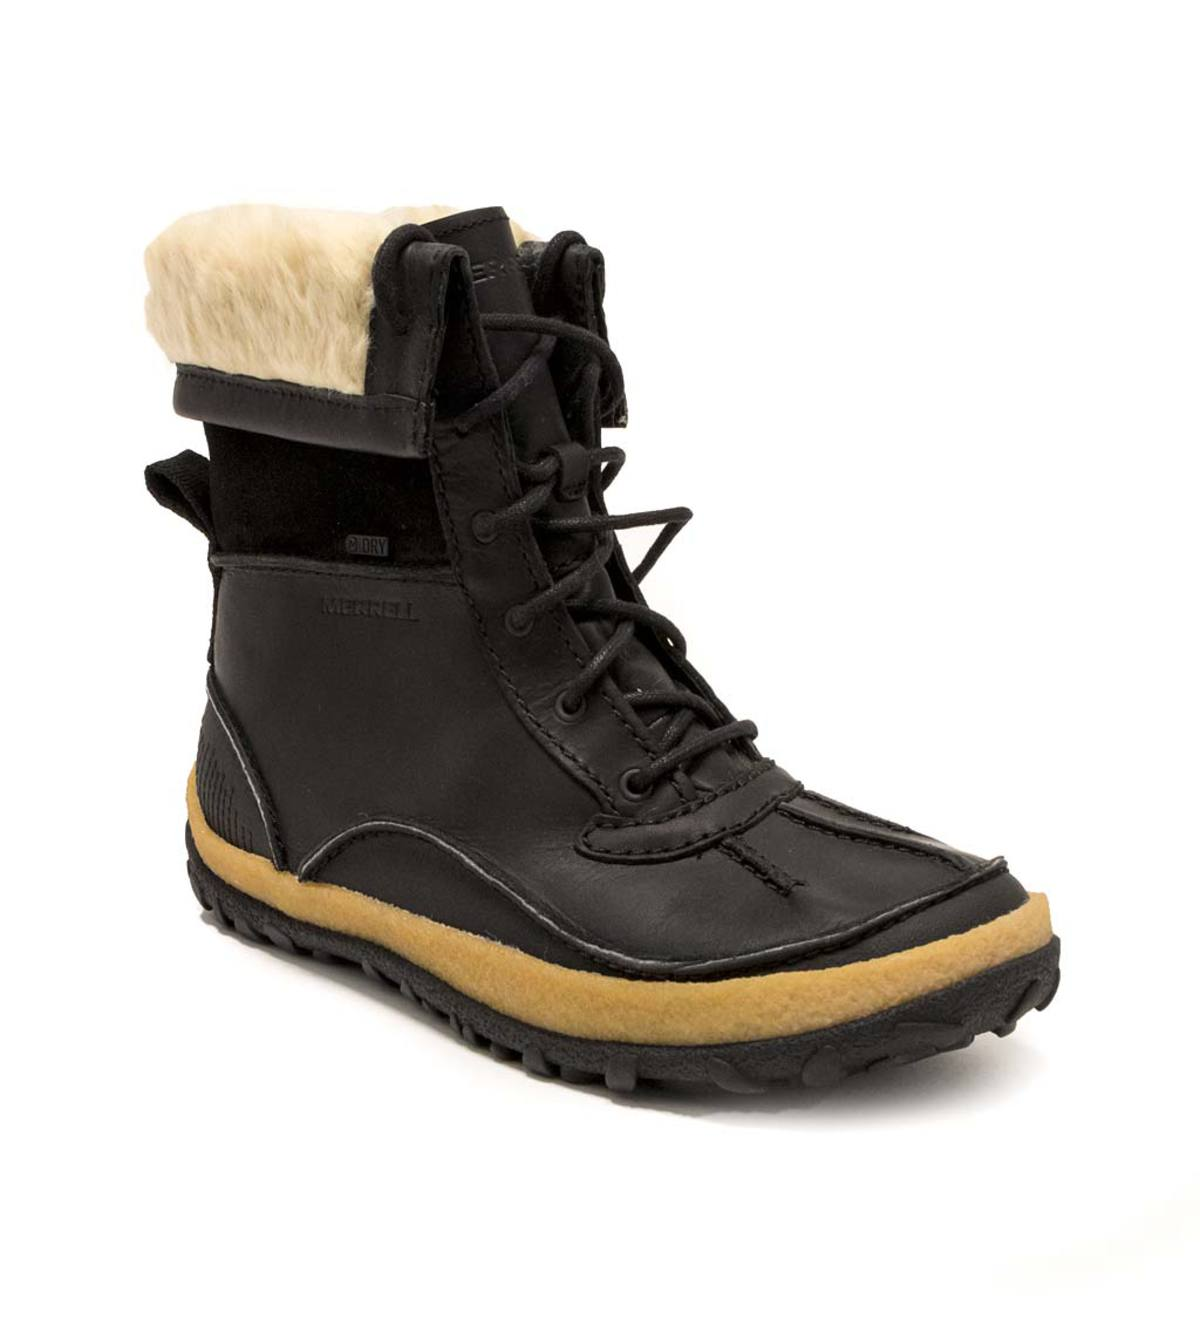 new authentic on feet shots of outlet store Merrell Women's Tremblant Mid Polar Waterproof Boot - Black - Size ...